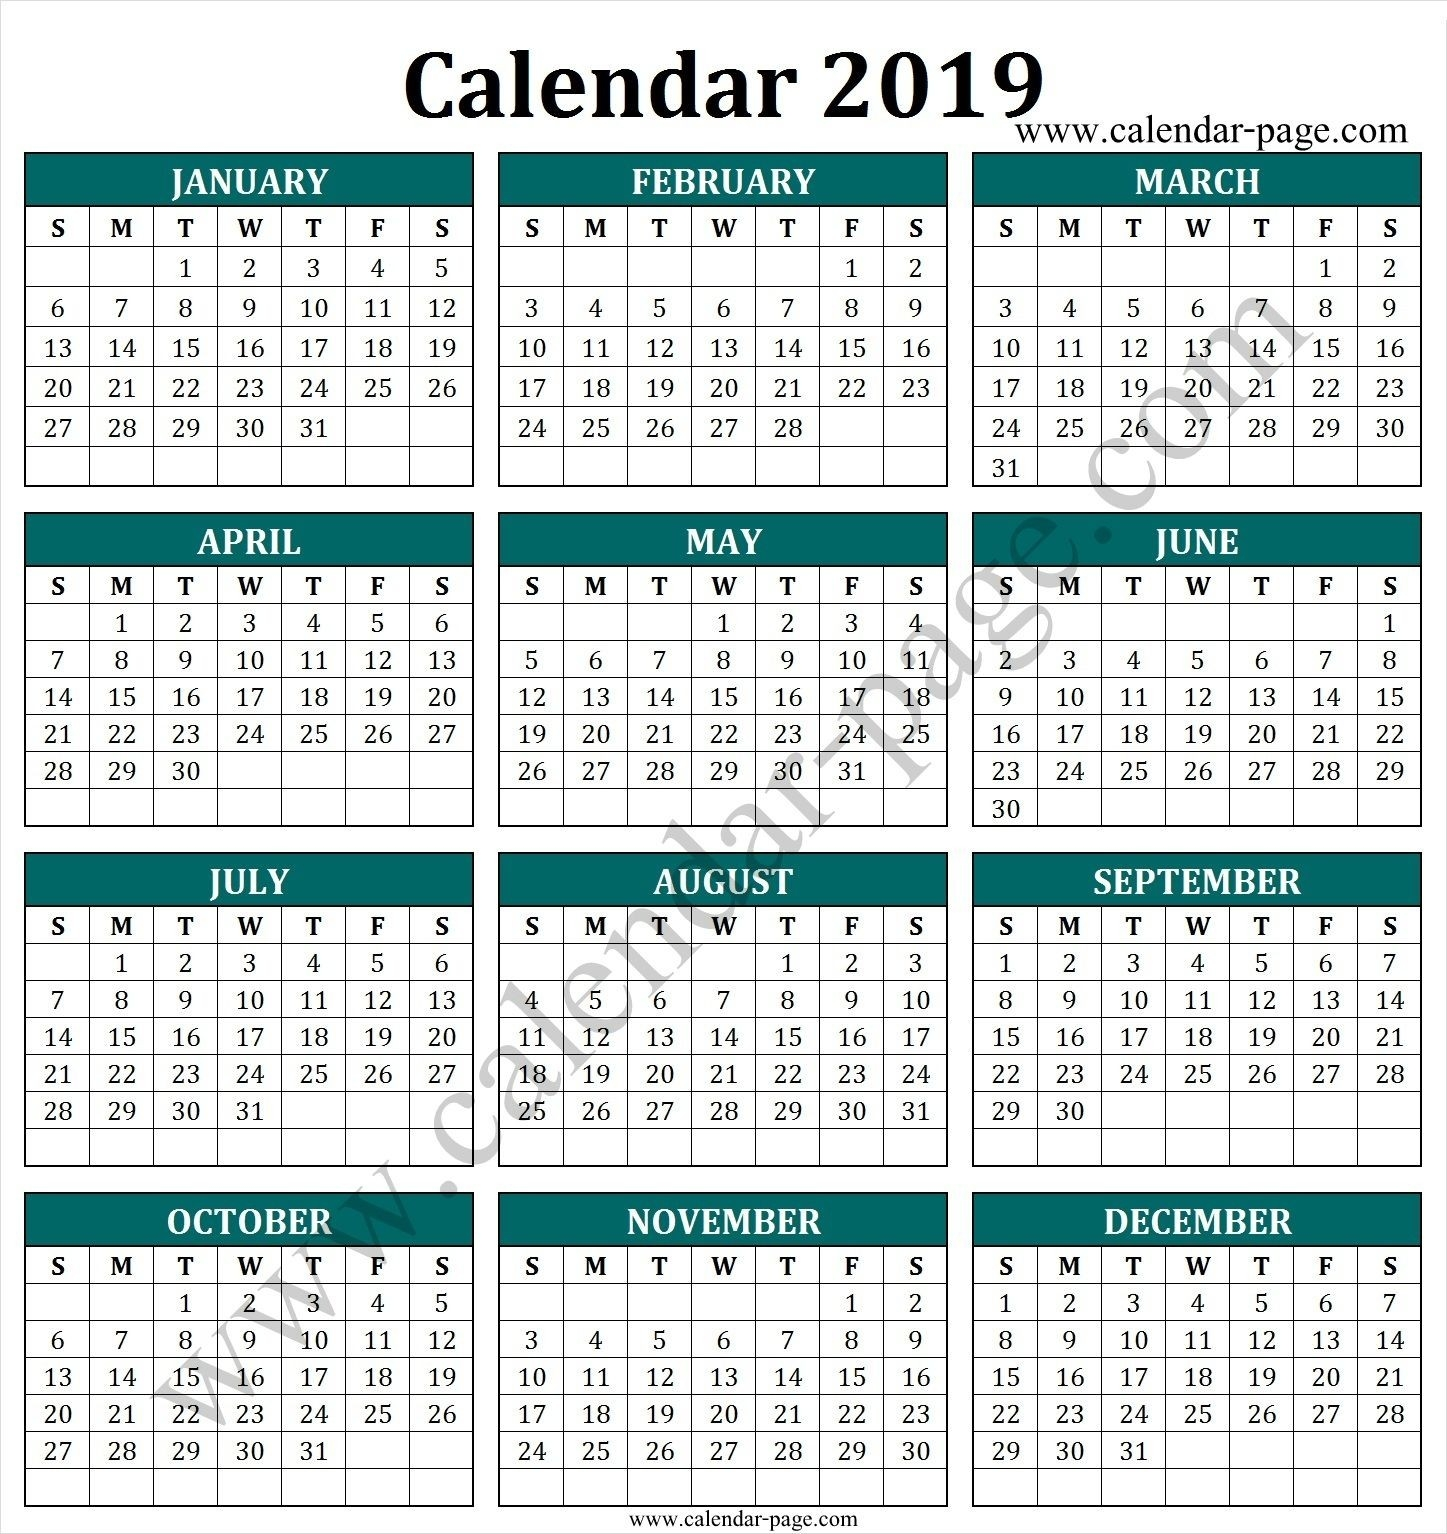 South Africa 2019 Calendar With Public Holidays | Calendar-Public Holidays South Africa